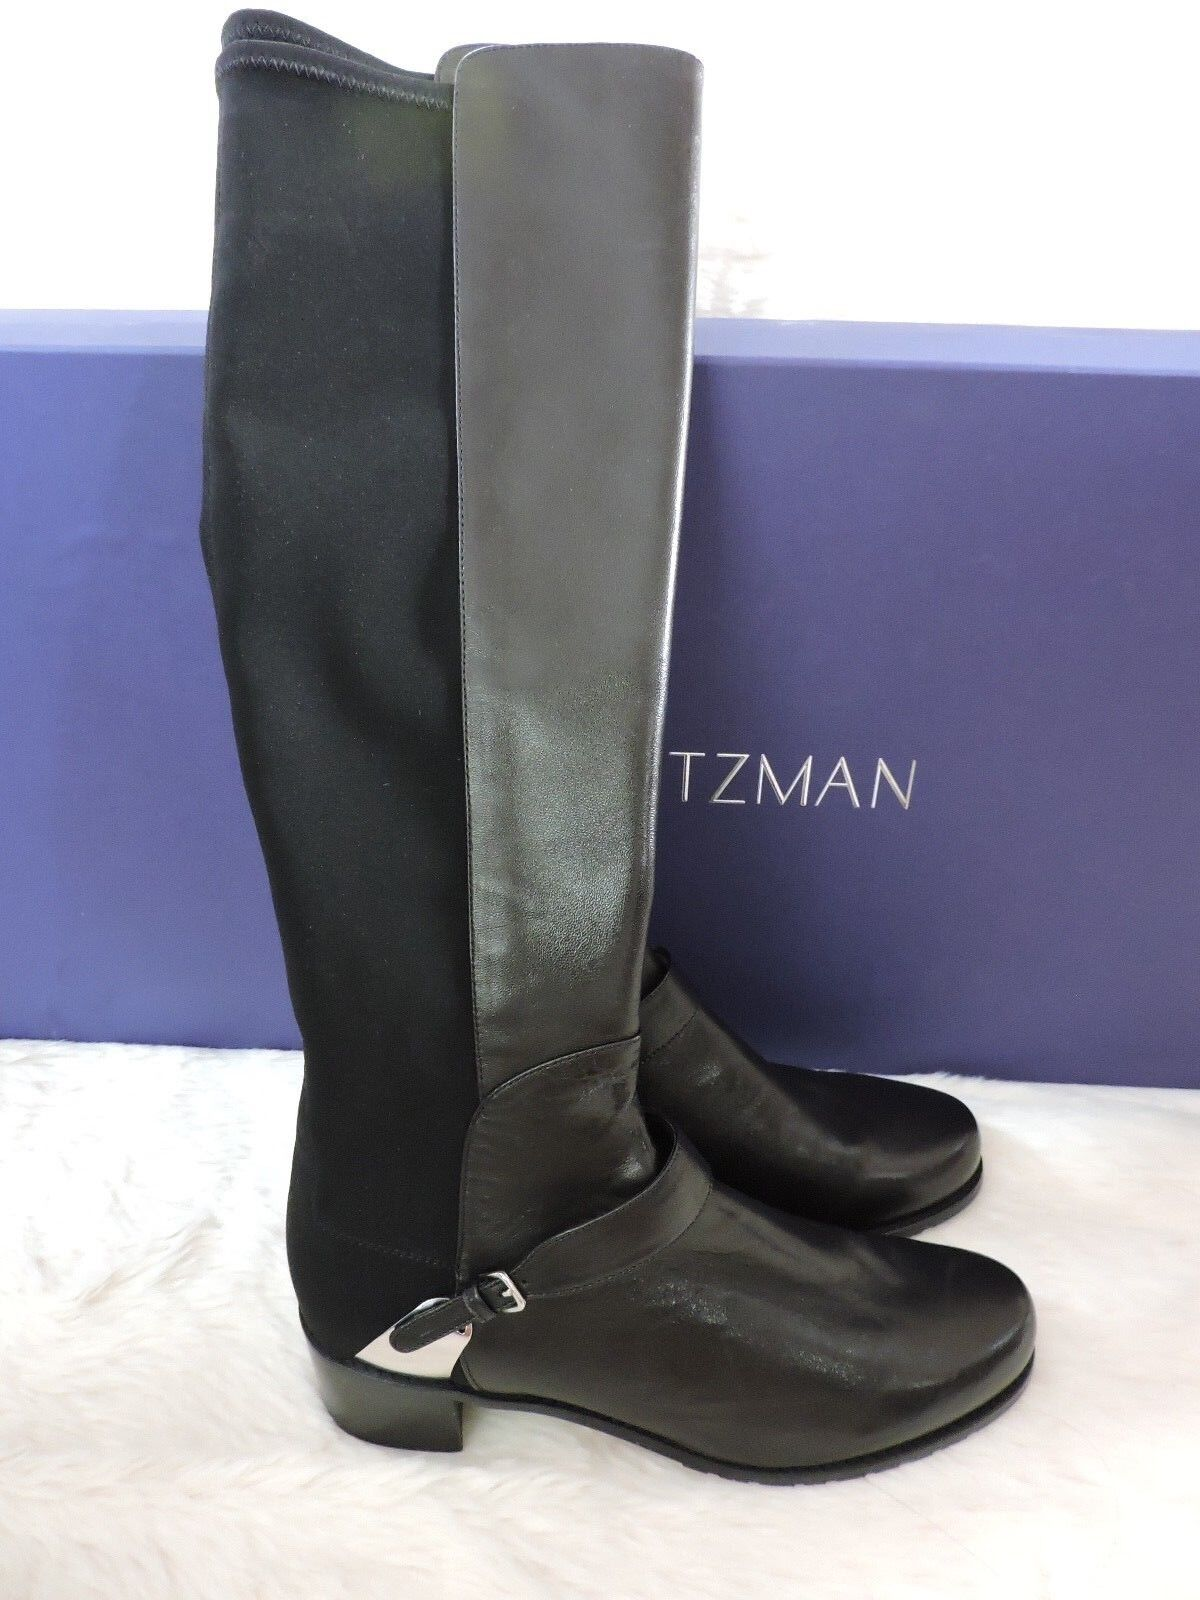 NEW $695 STUART WEITZMAN CABALLER 5050 50/50 STRETCH LEATHER BOOT BLACK 8.5